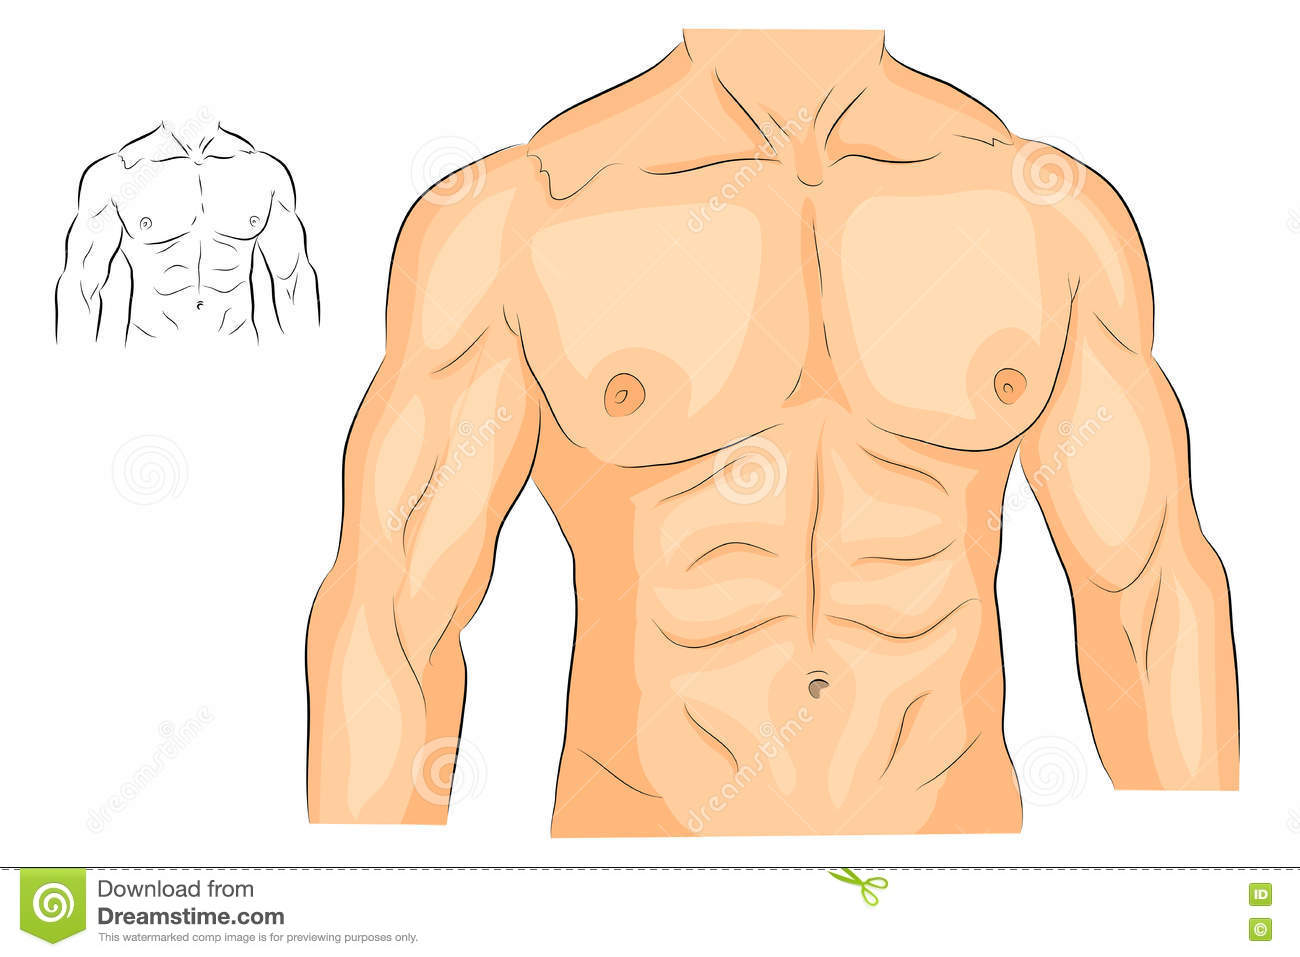 Men S Body Arms Shoulders Chest And Abs. Stock Vector.